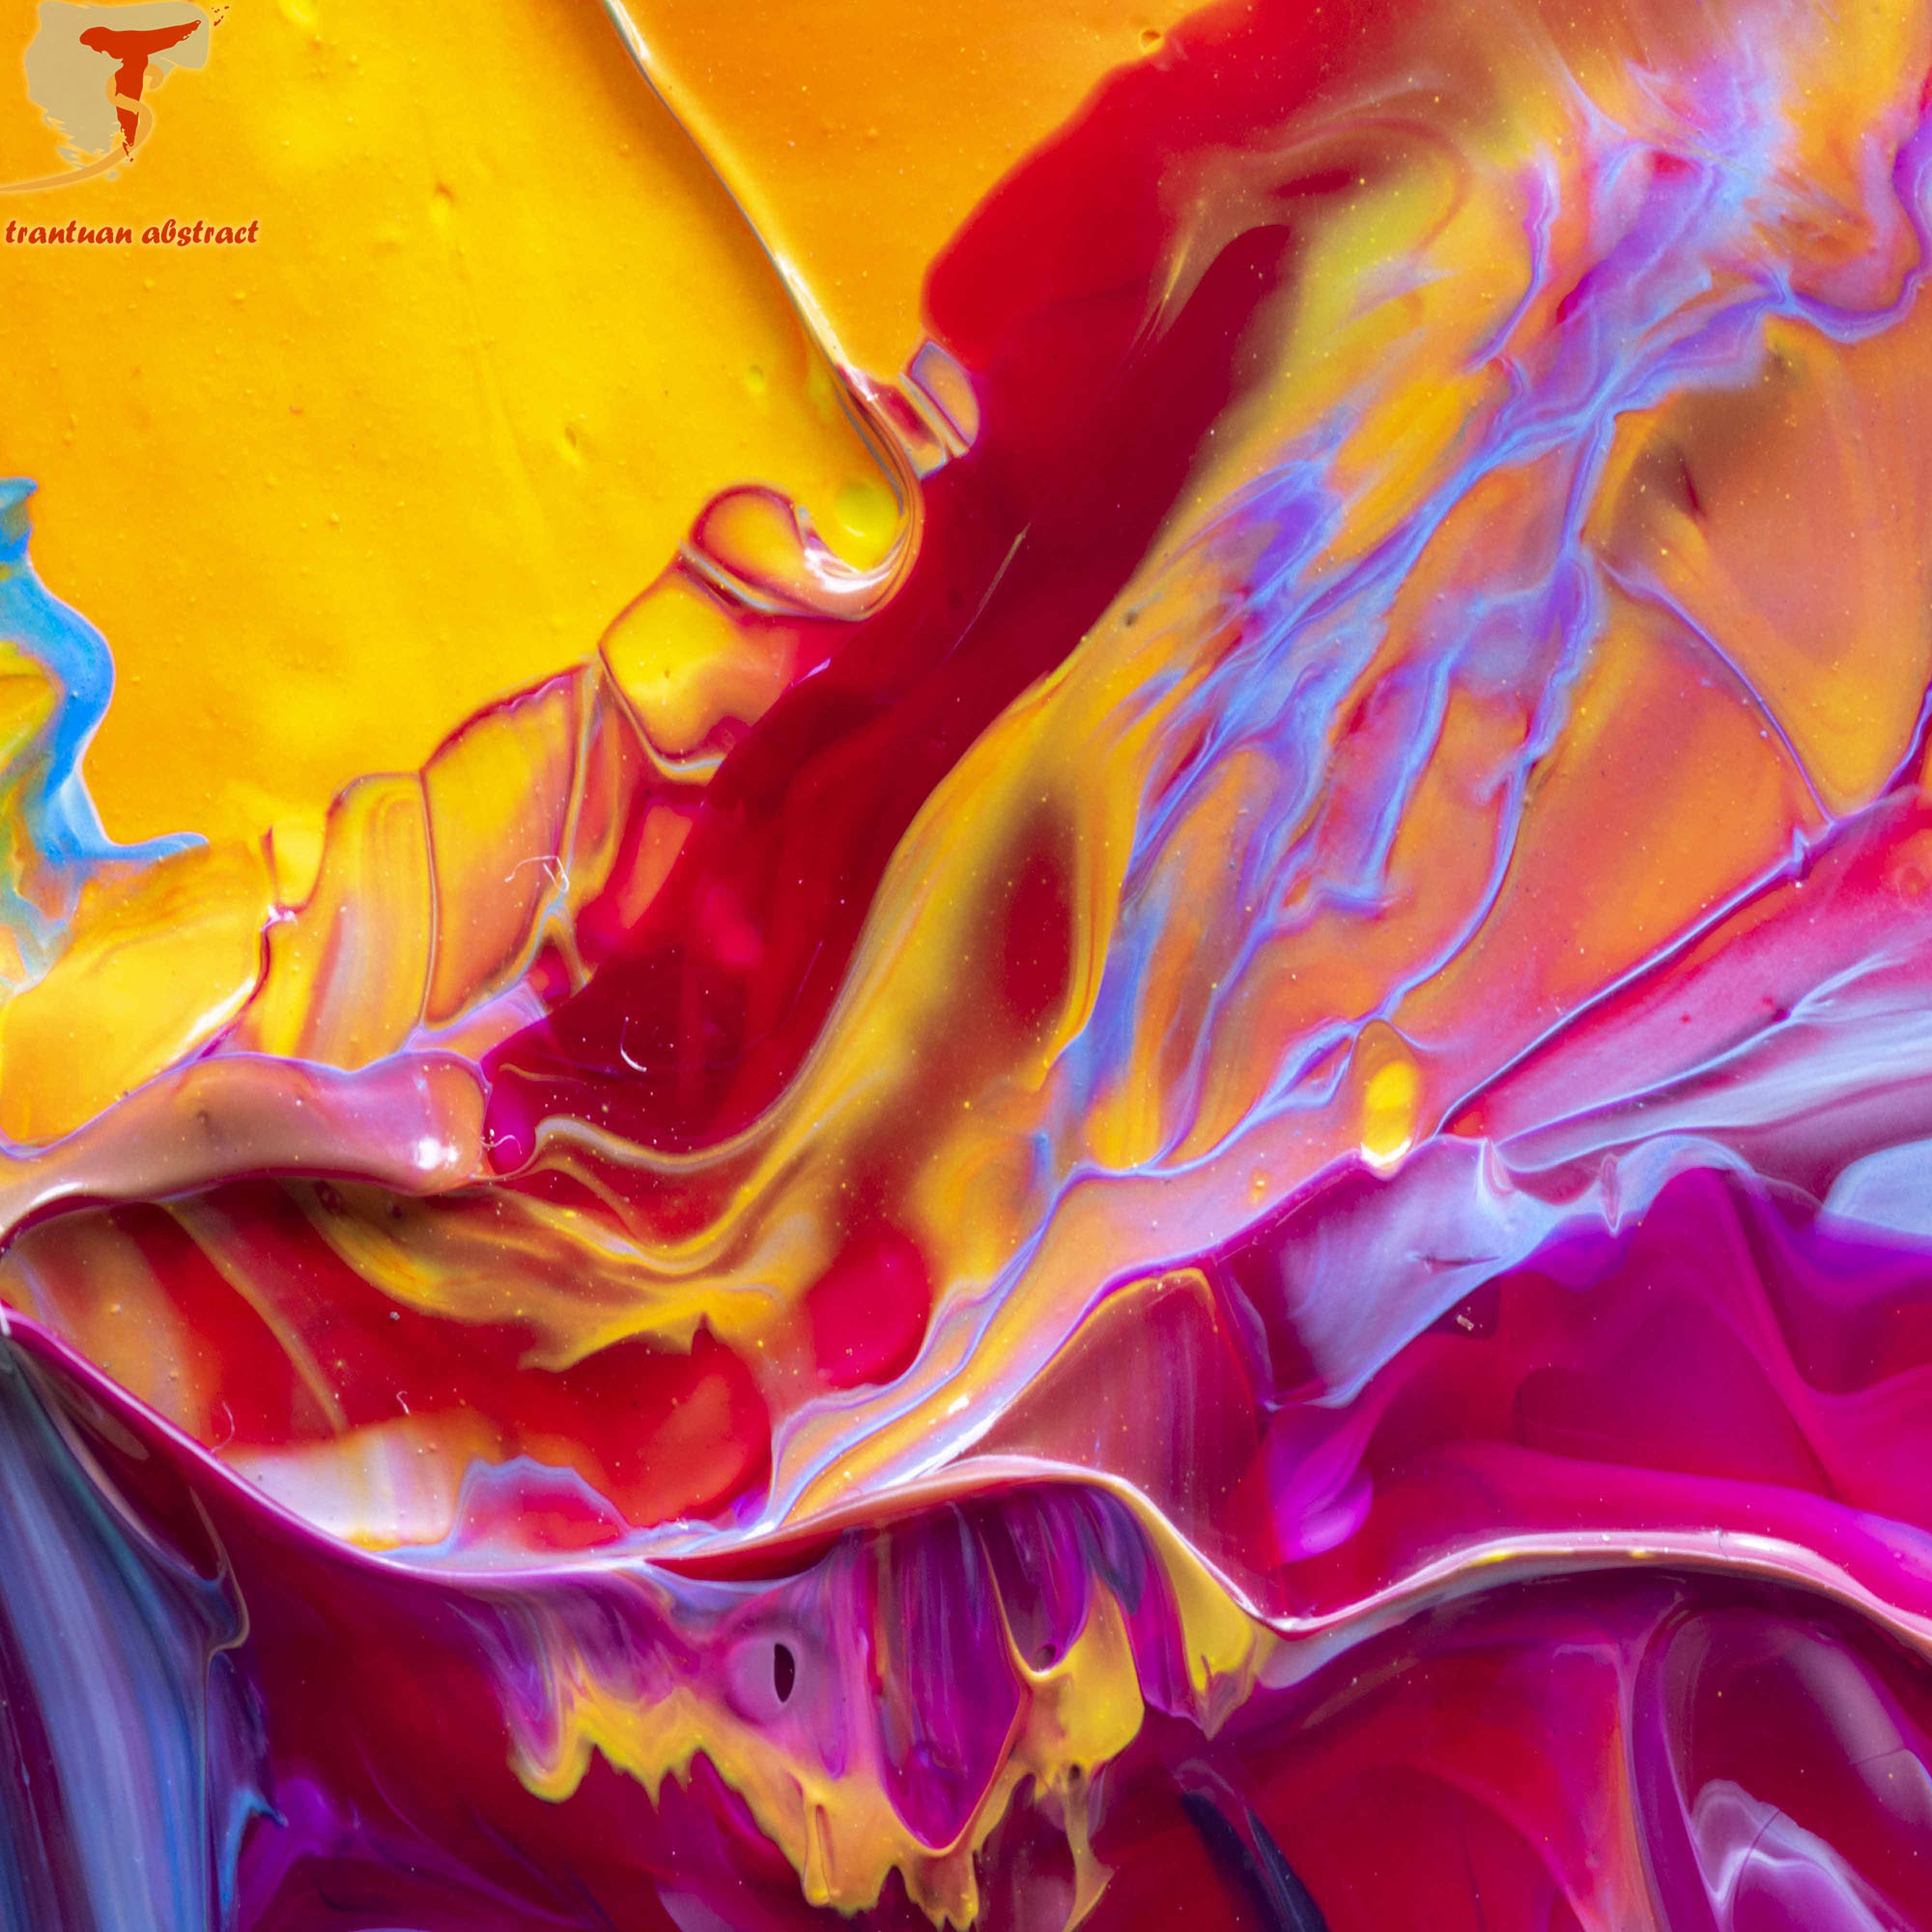 Tran Tuan Abstract Love and Sun 2021 95 x 68 x 5 cm Acrylic on Canvas Painting Detail